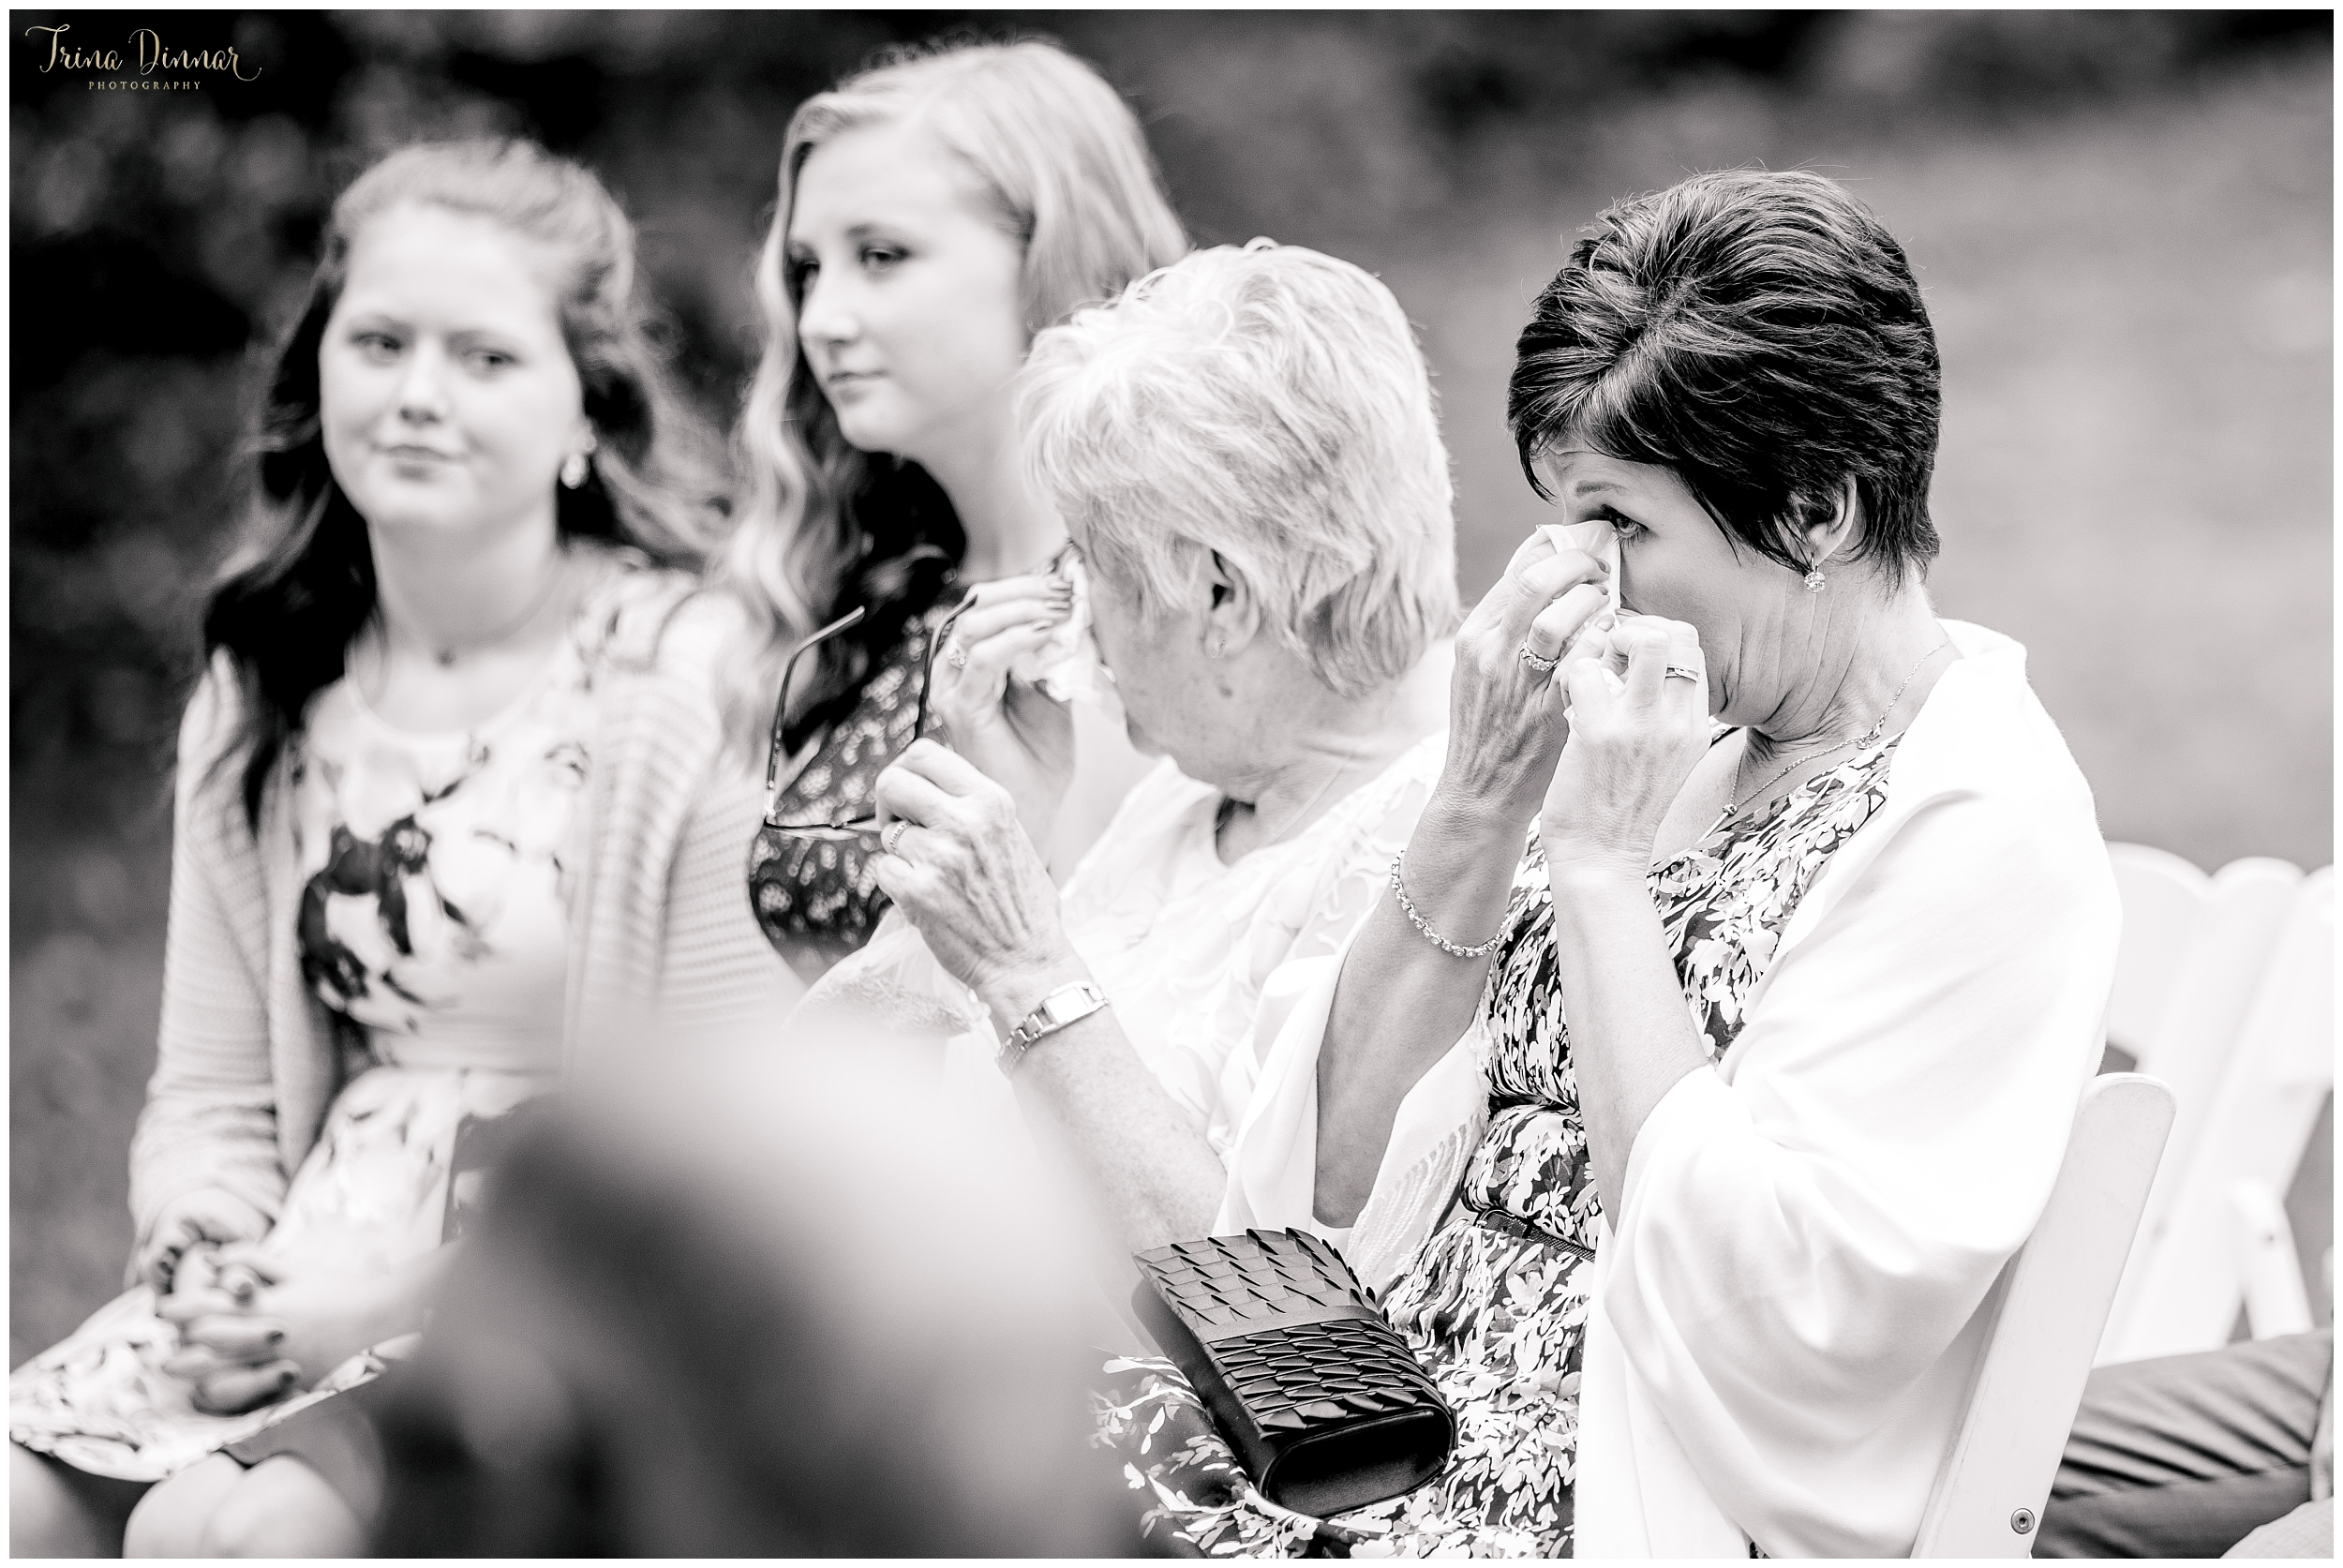 A tearful moment at the wedding ceremony